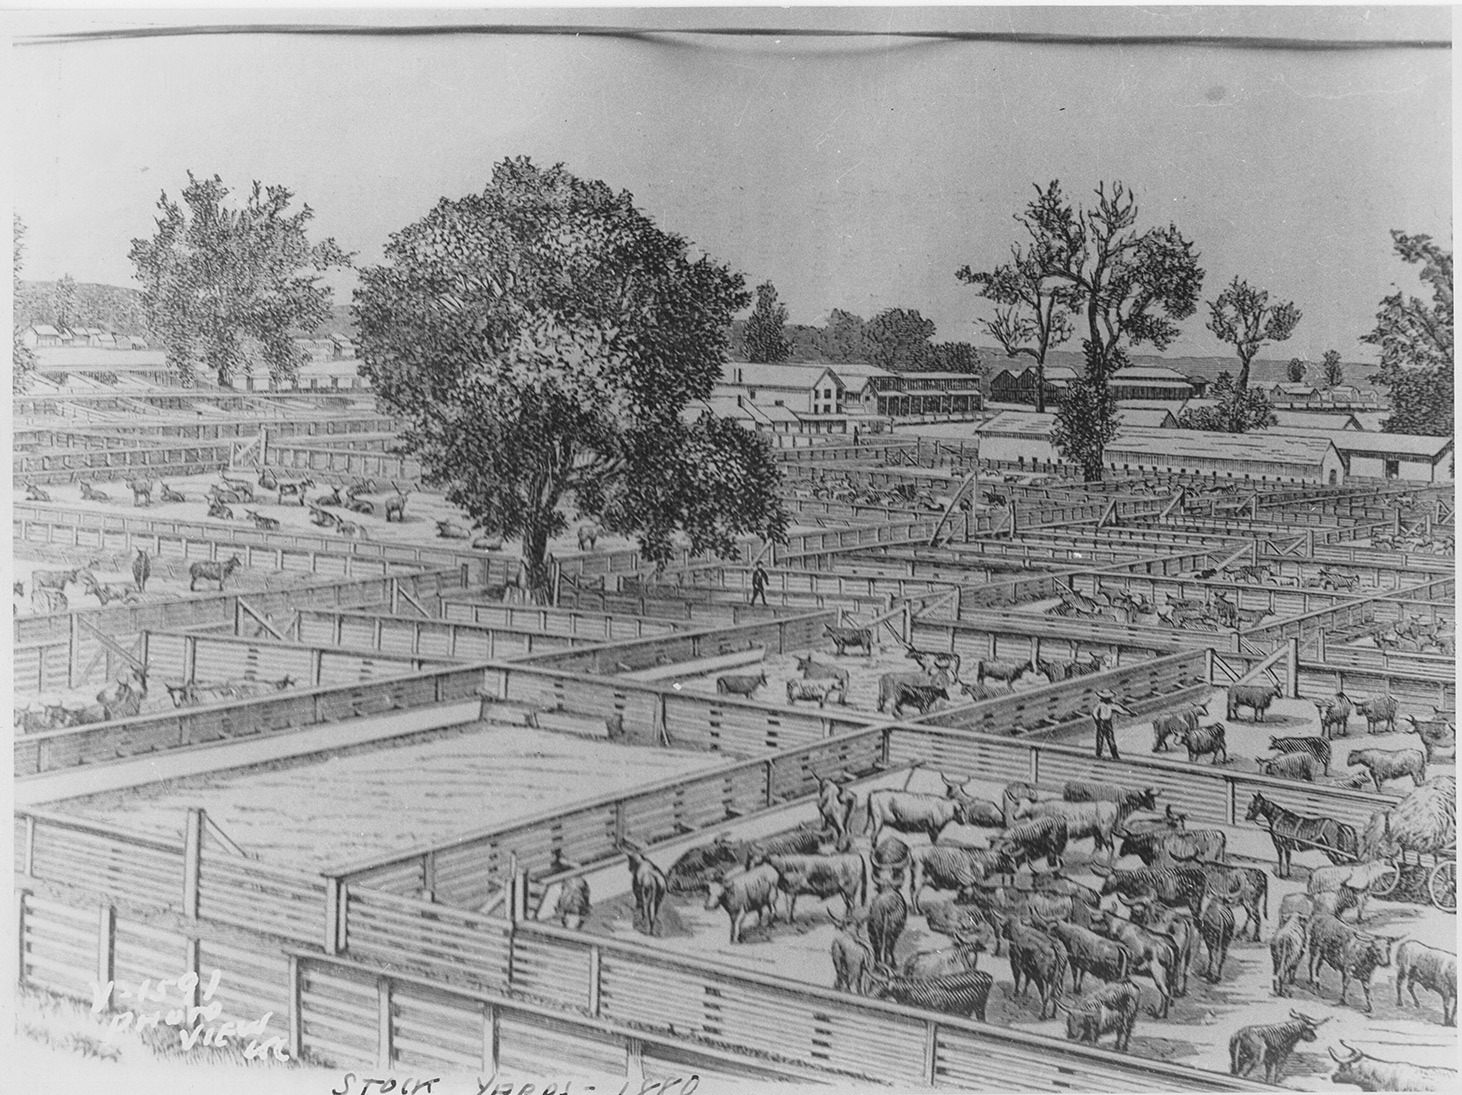 Drawing of livestock pens in 1880